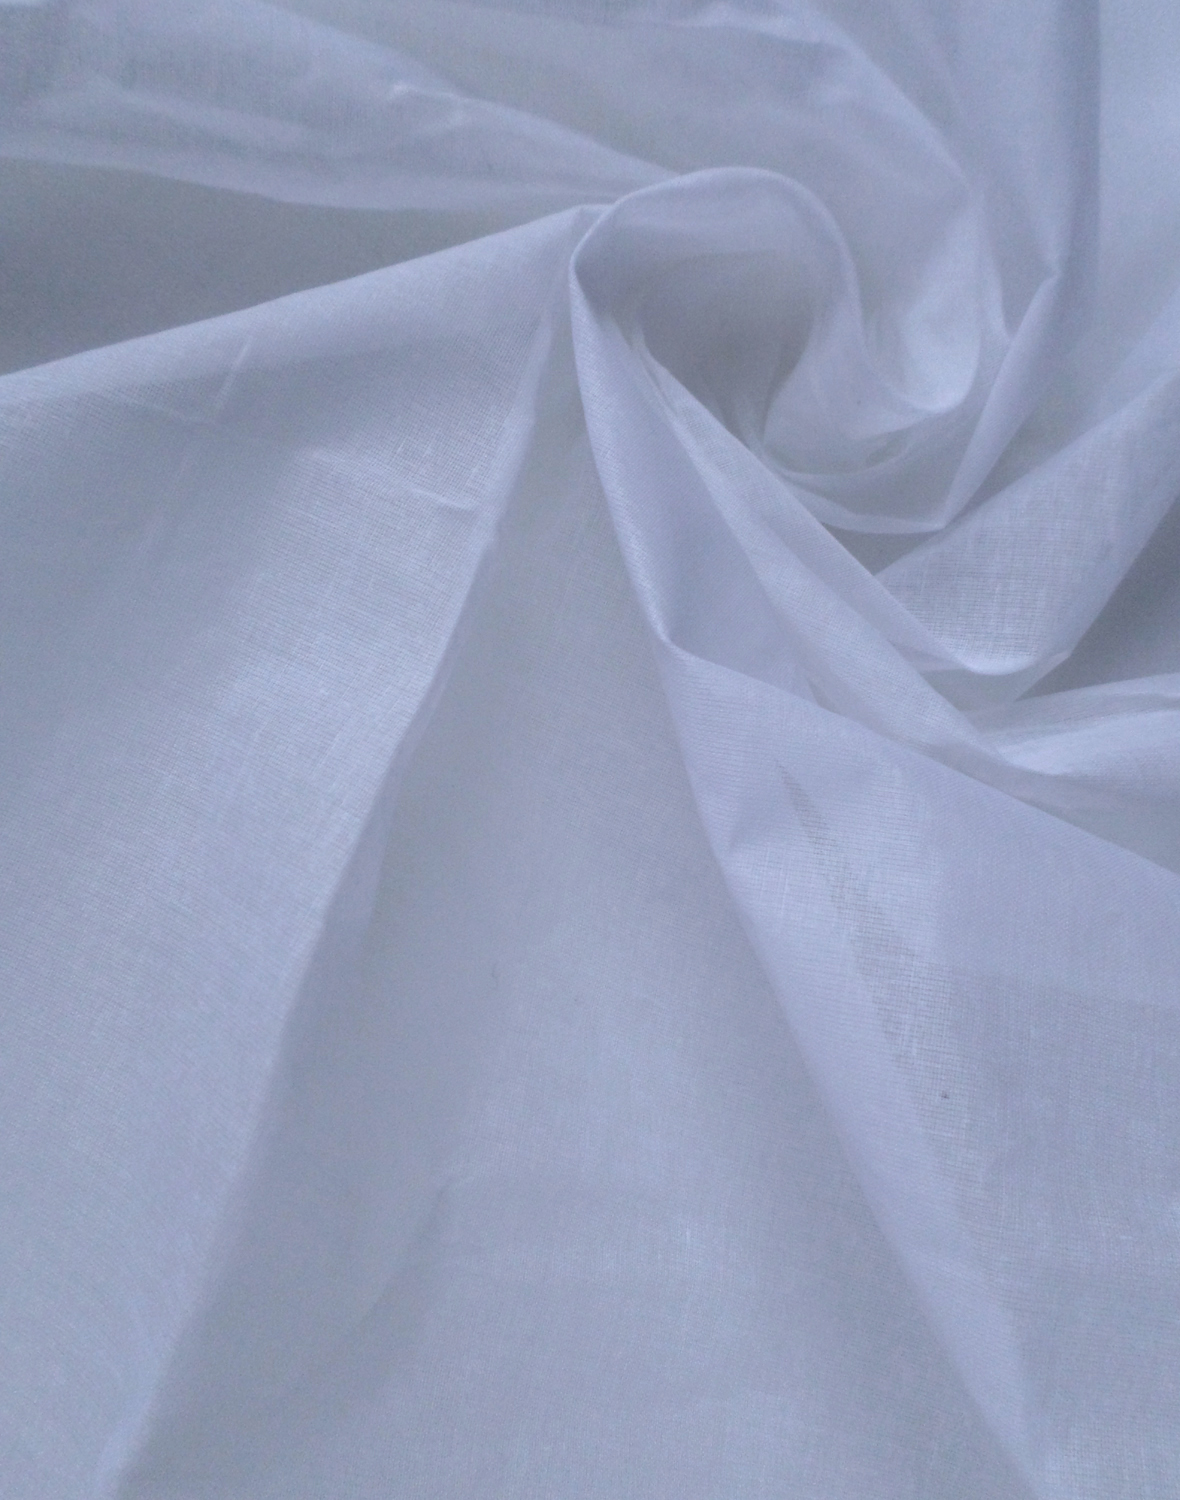 Suede Upholstery Fabric >> Cotton Organdy : Sheer - Wholesale Bridal Fabric